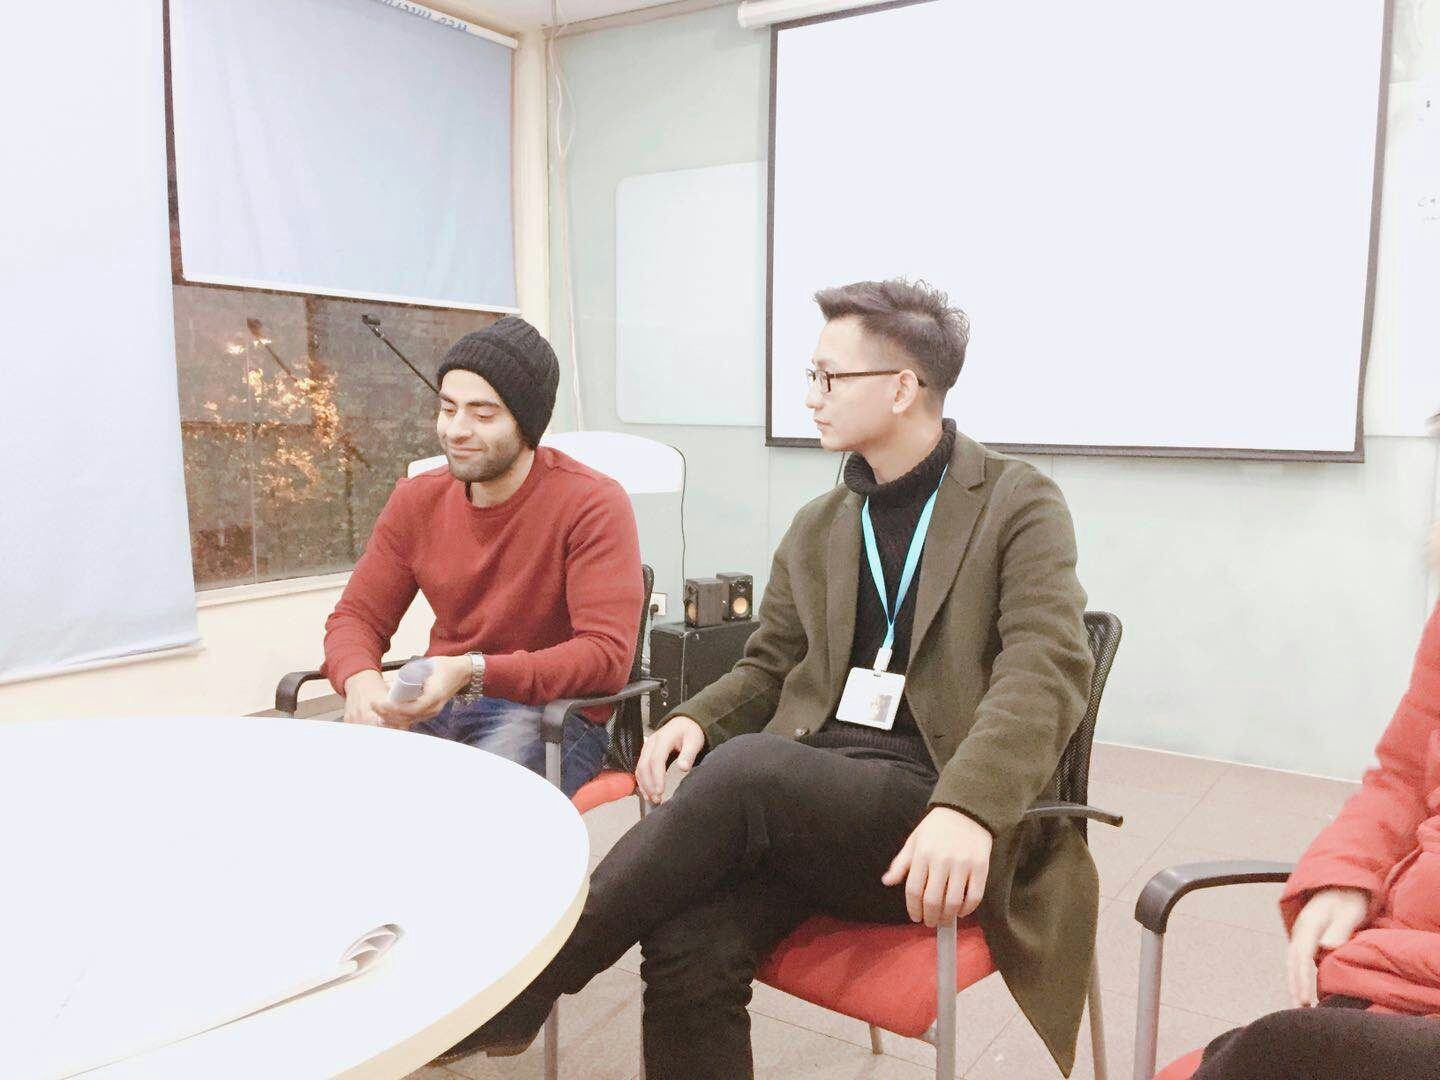 ISSY - From Giza to Zhejiang: Interview with Issy Hossam